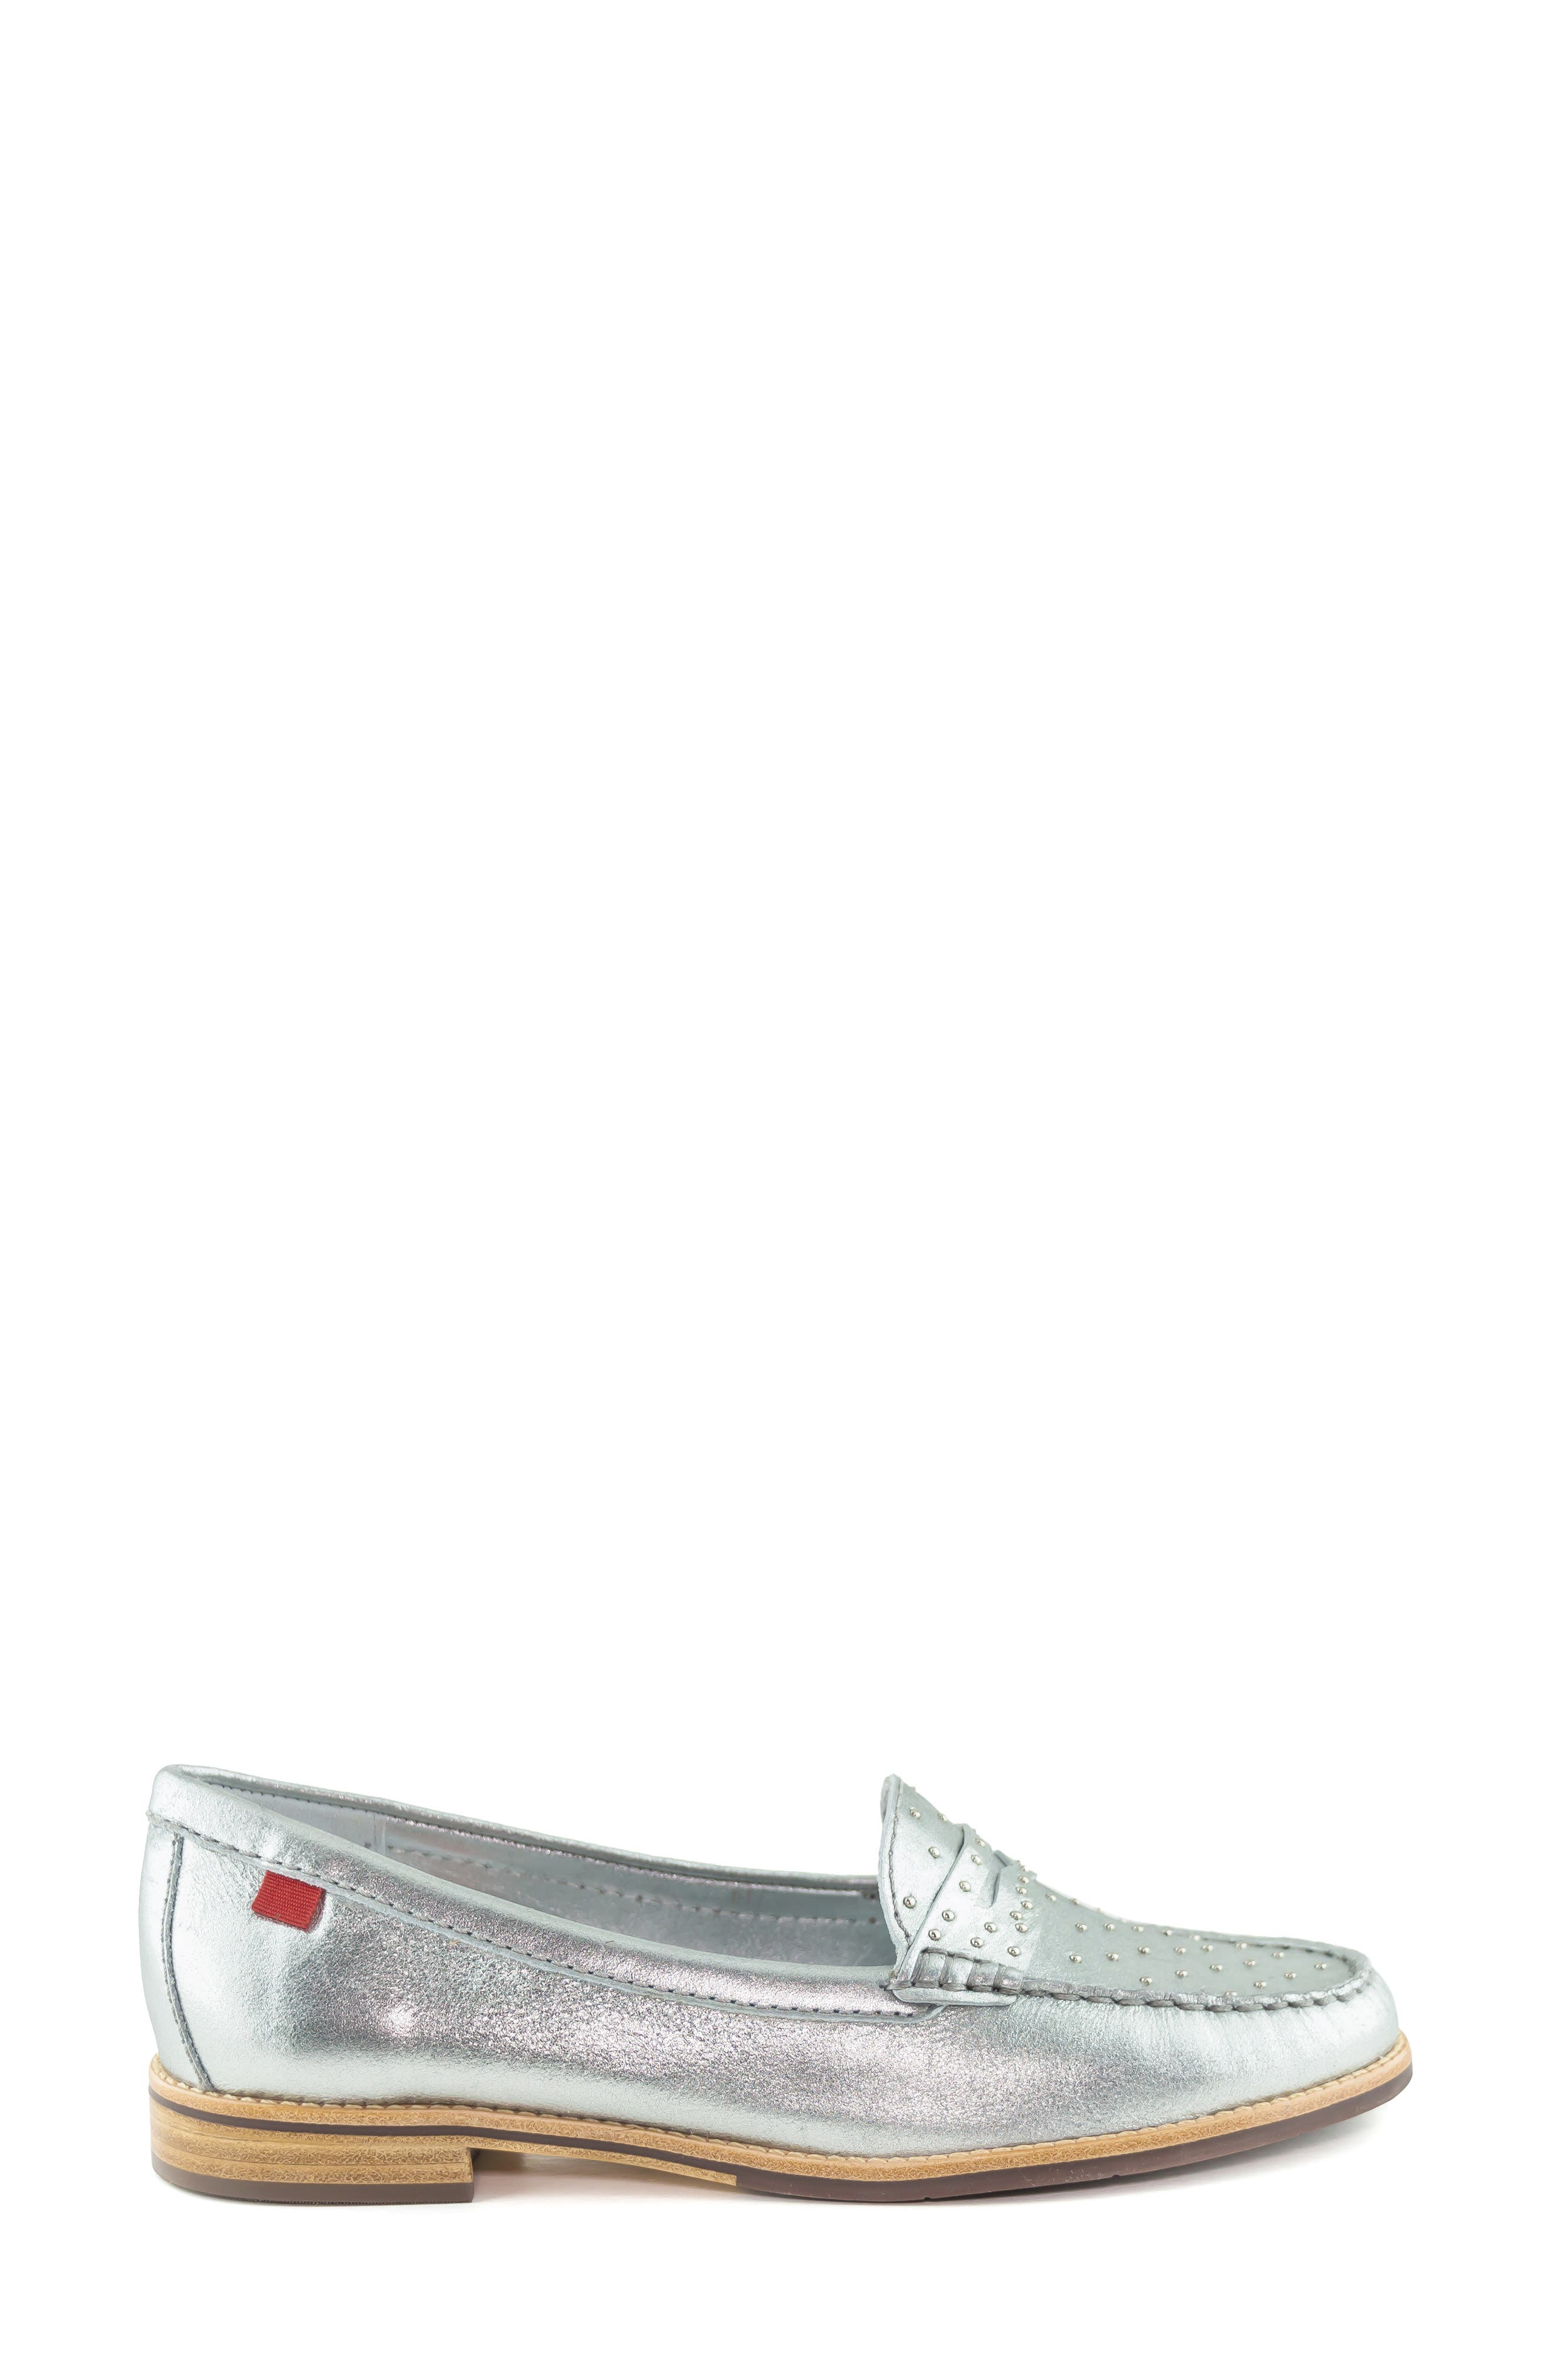 MARC JOSEPH NEW YORK, East Village III Studded Loafer, Alternate thumbnail 3, color, SILVER LEATHER